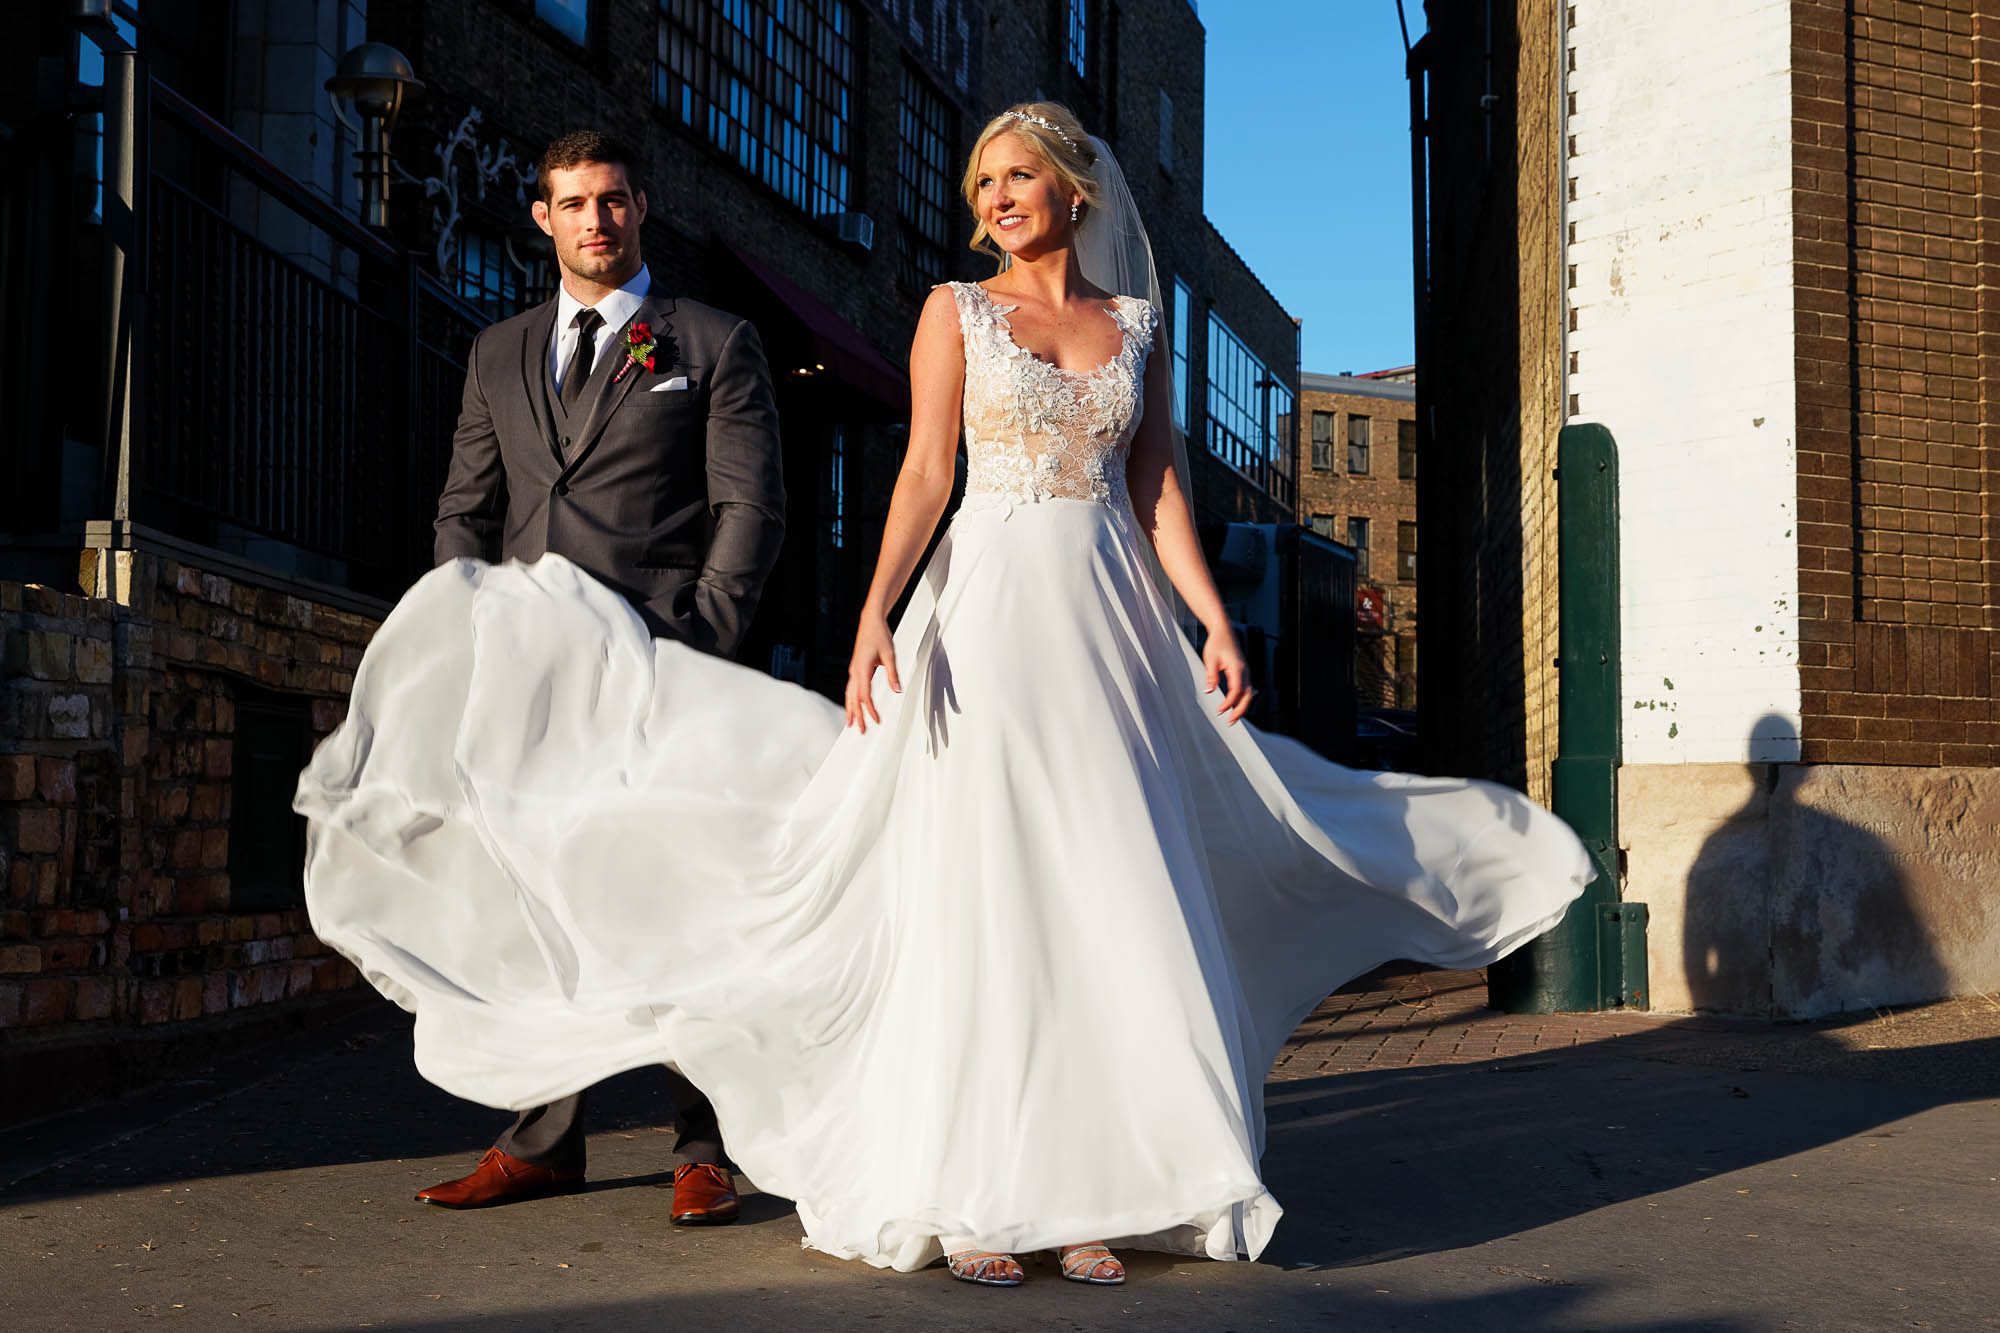 -bride-playing-with-her-dress-in-old-industiral-street